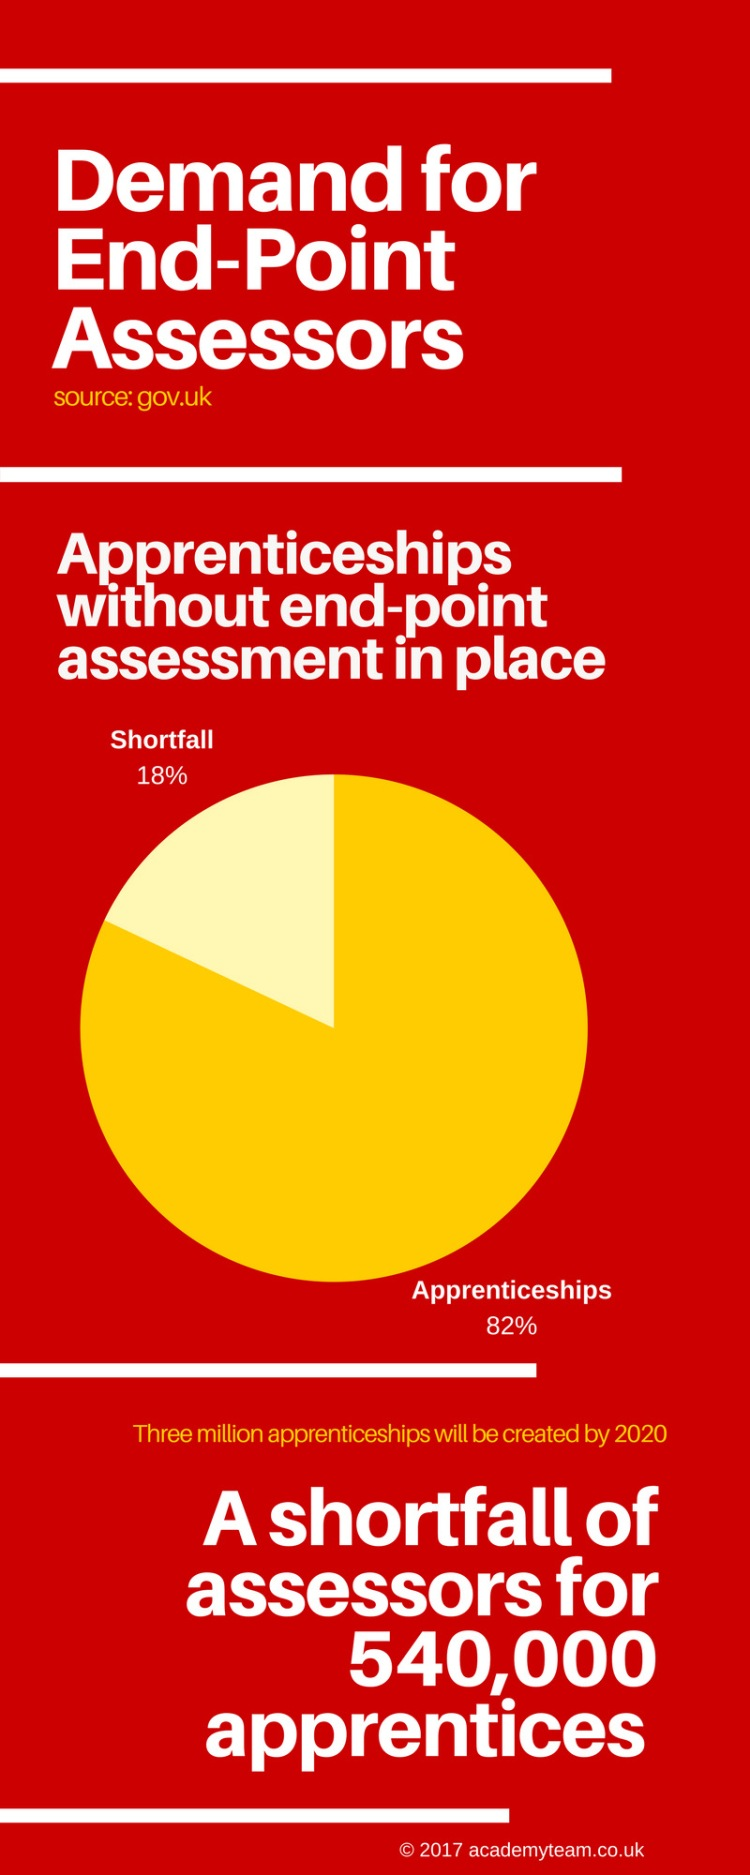 AcademyTeam End-Point Assessor Graphic